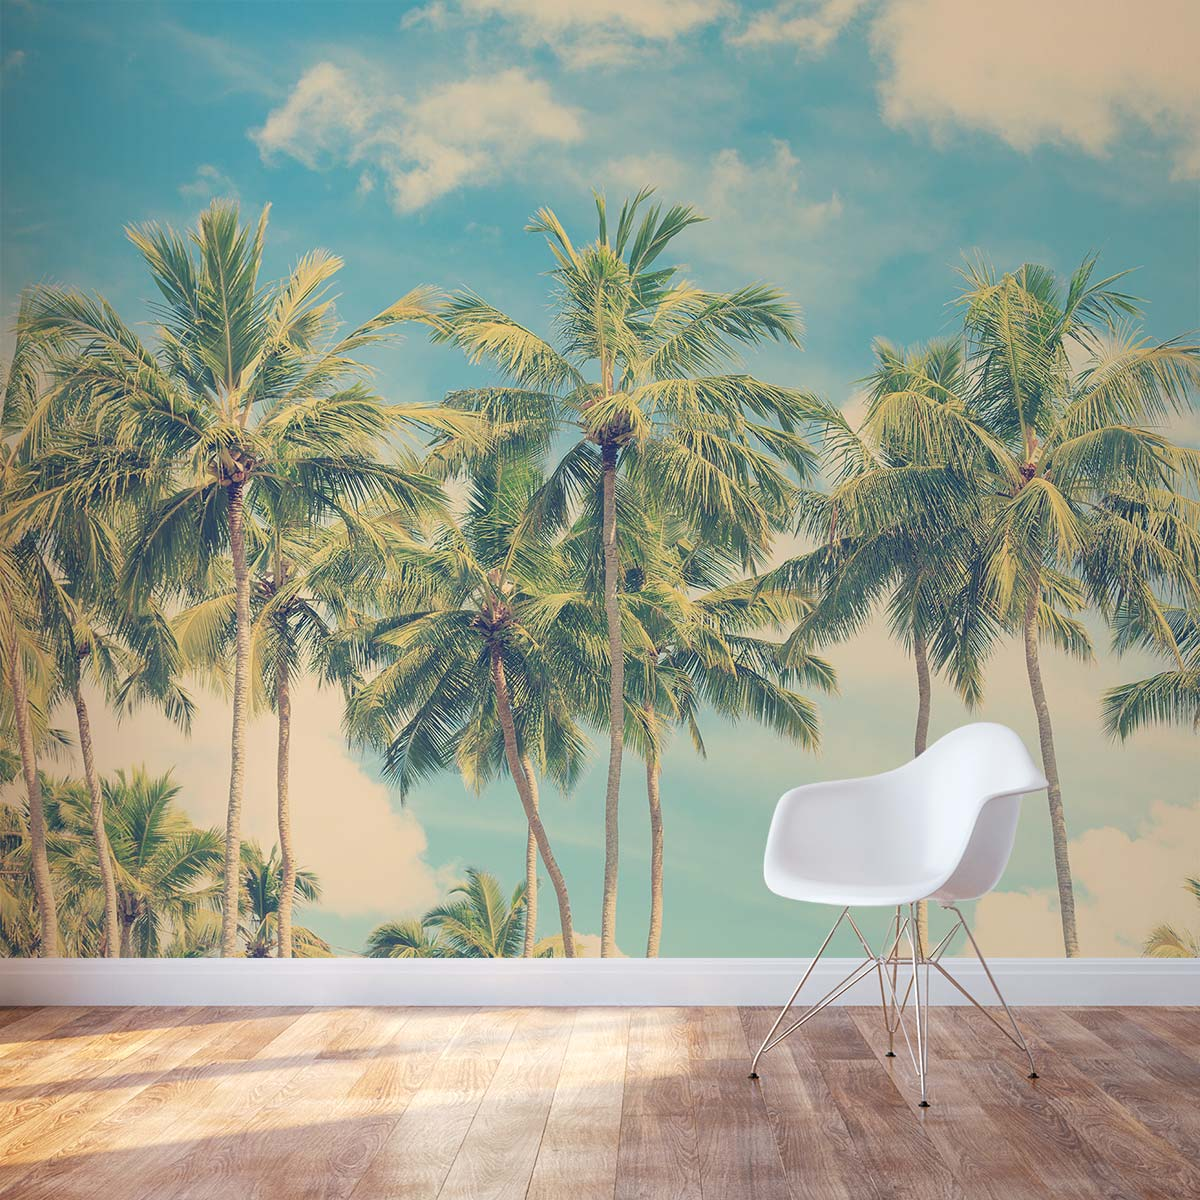 Marvelous Thailand Pier Sunset Wall Mural Vintage Summer Palms ... Design Ideas